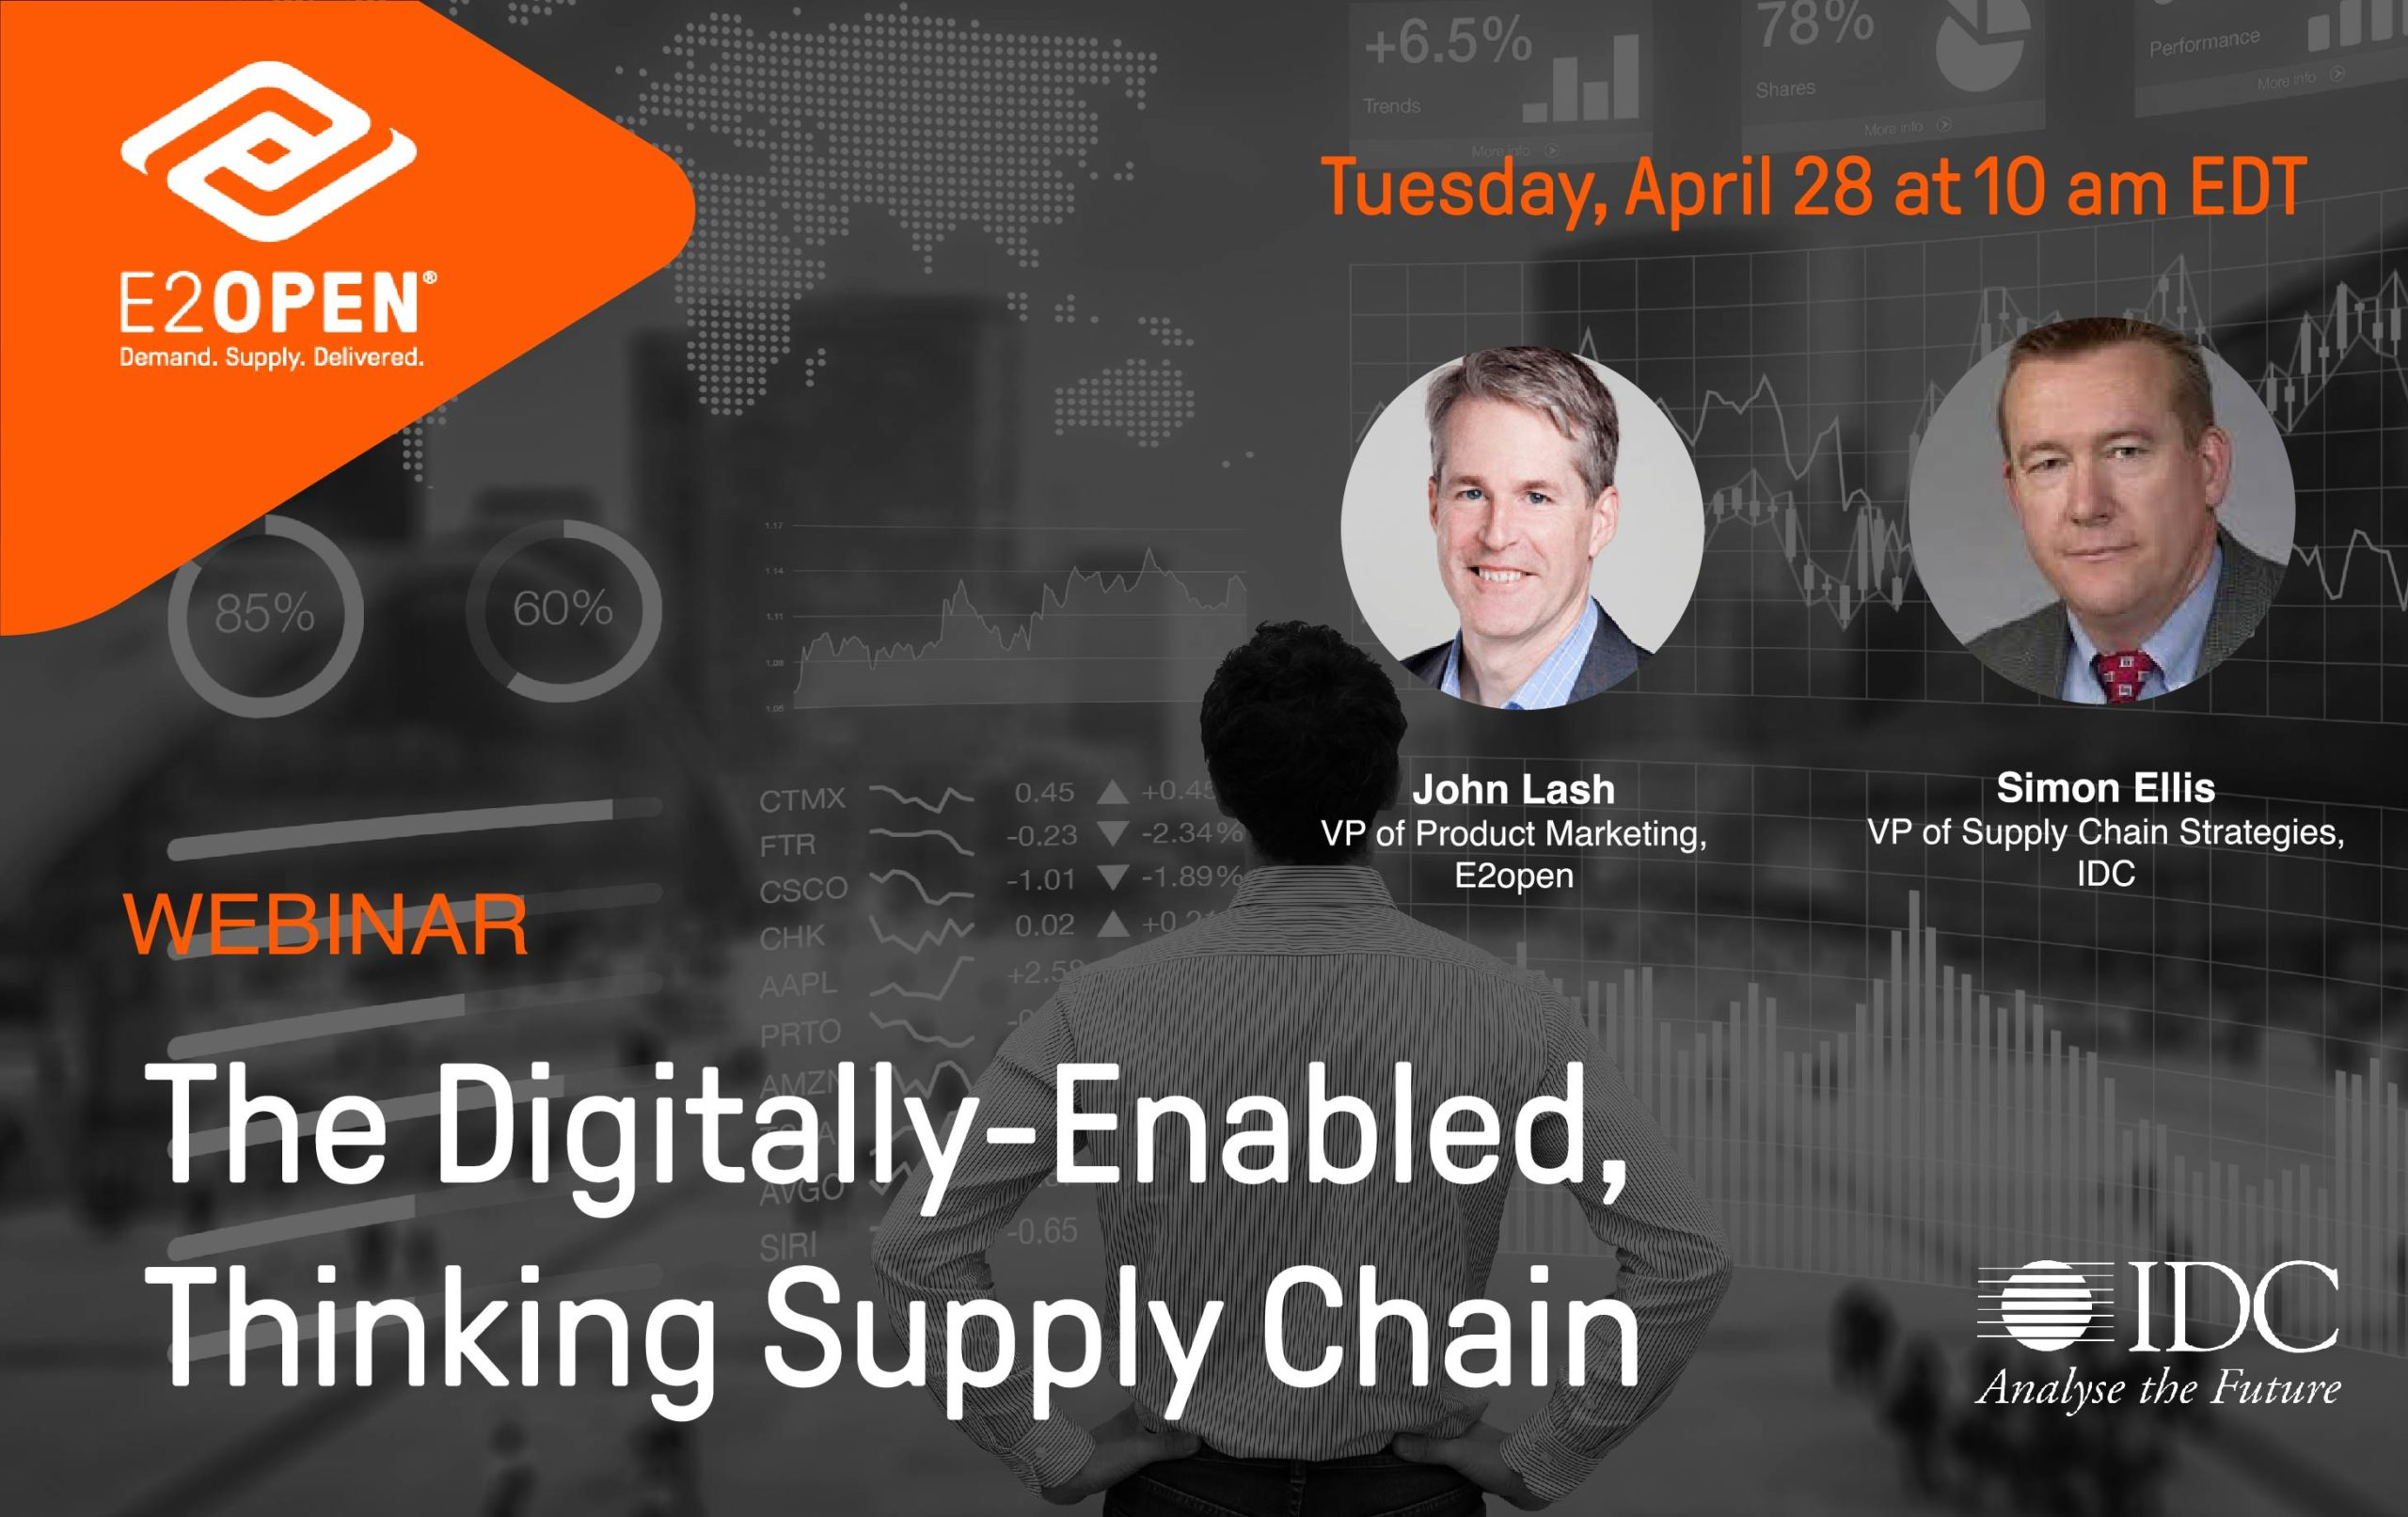 How to Make Your Supply Chain Digitally Enabled and Responsive